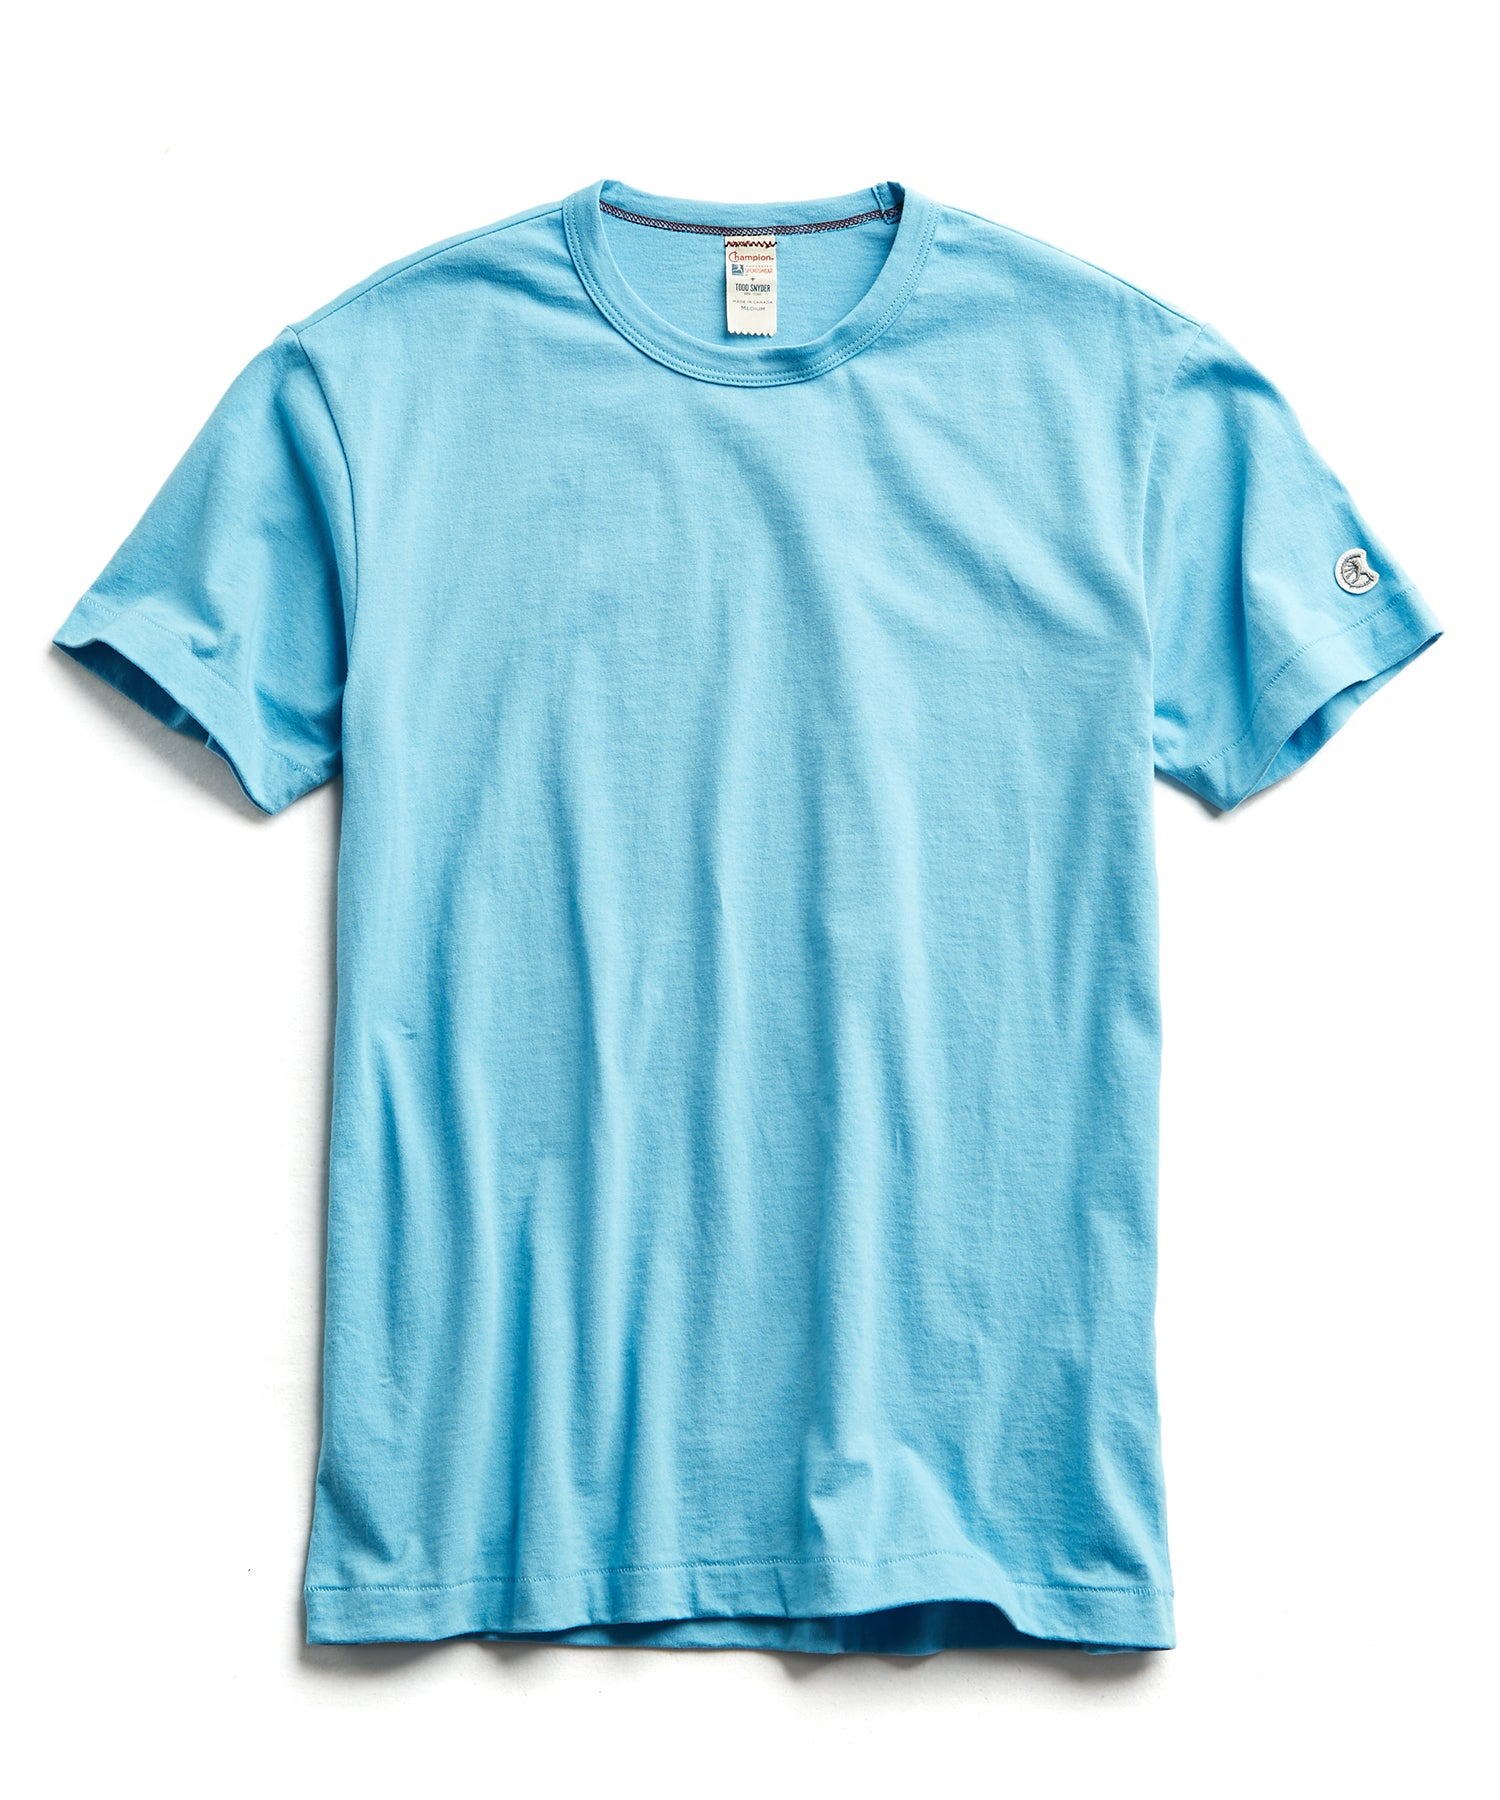 Champion Basic Jersey Tee in Pool Blue